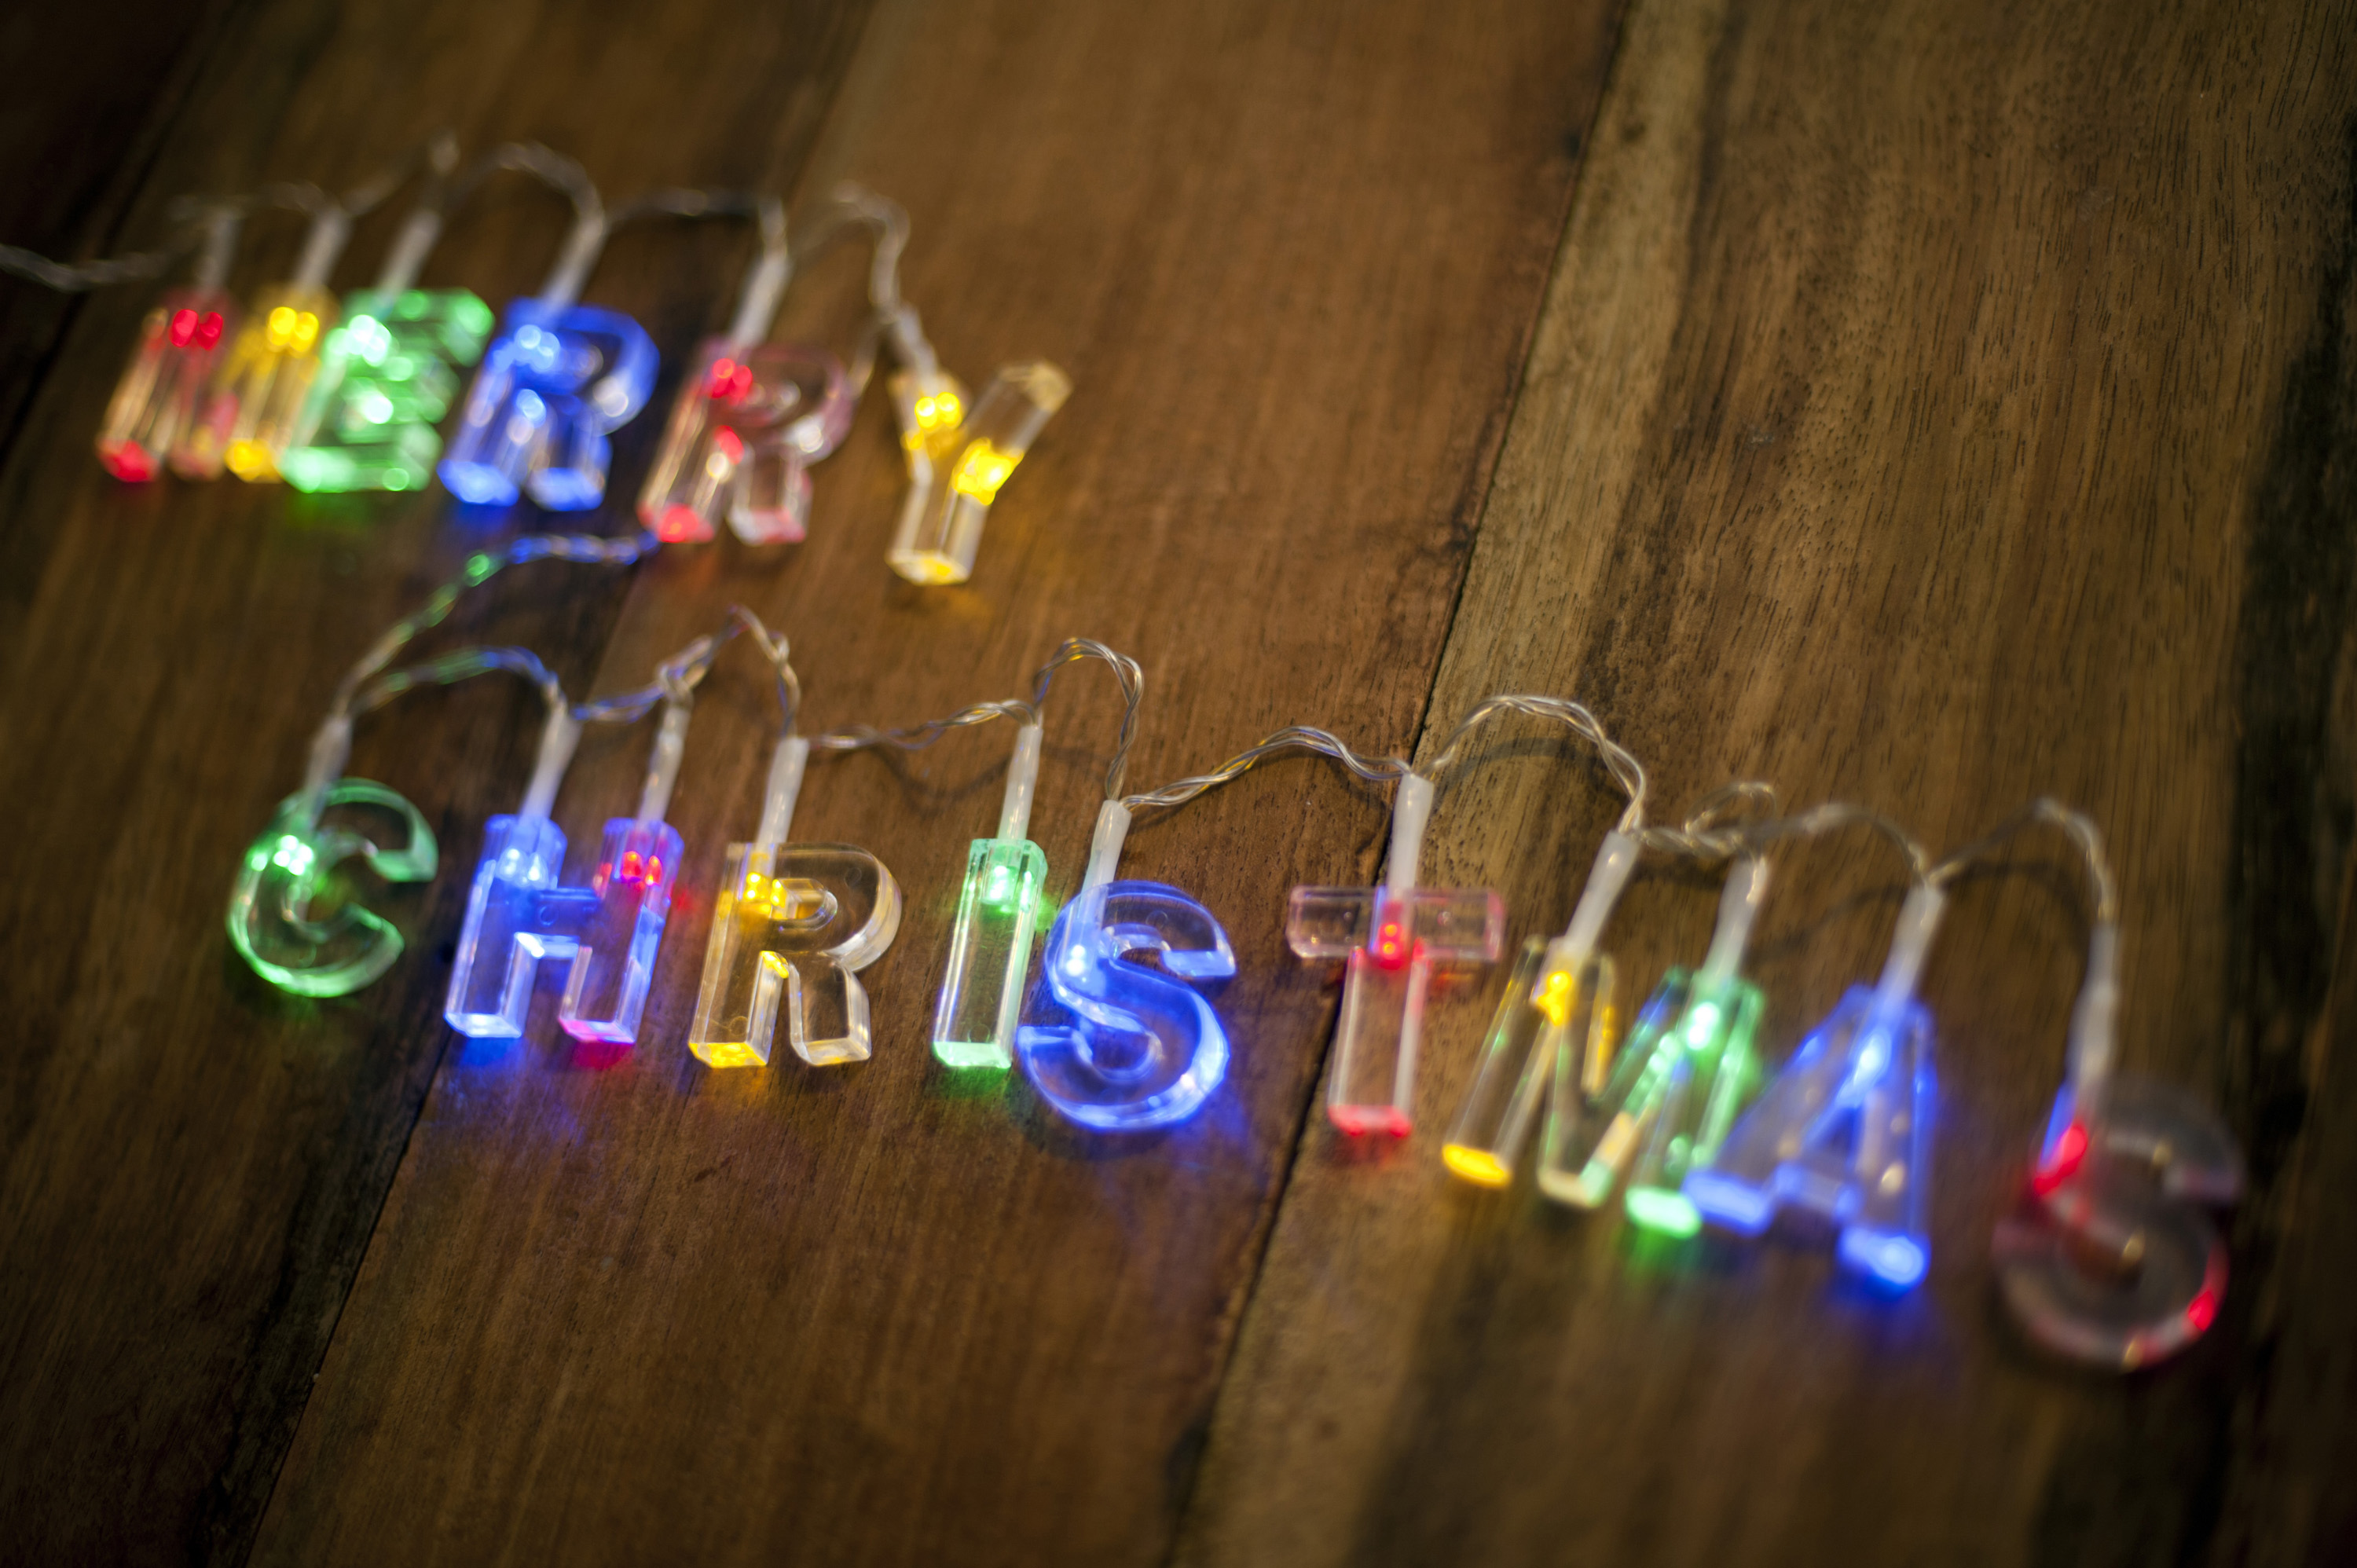 Close-up of Merry Christmas lighted garland